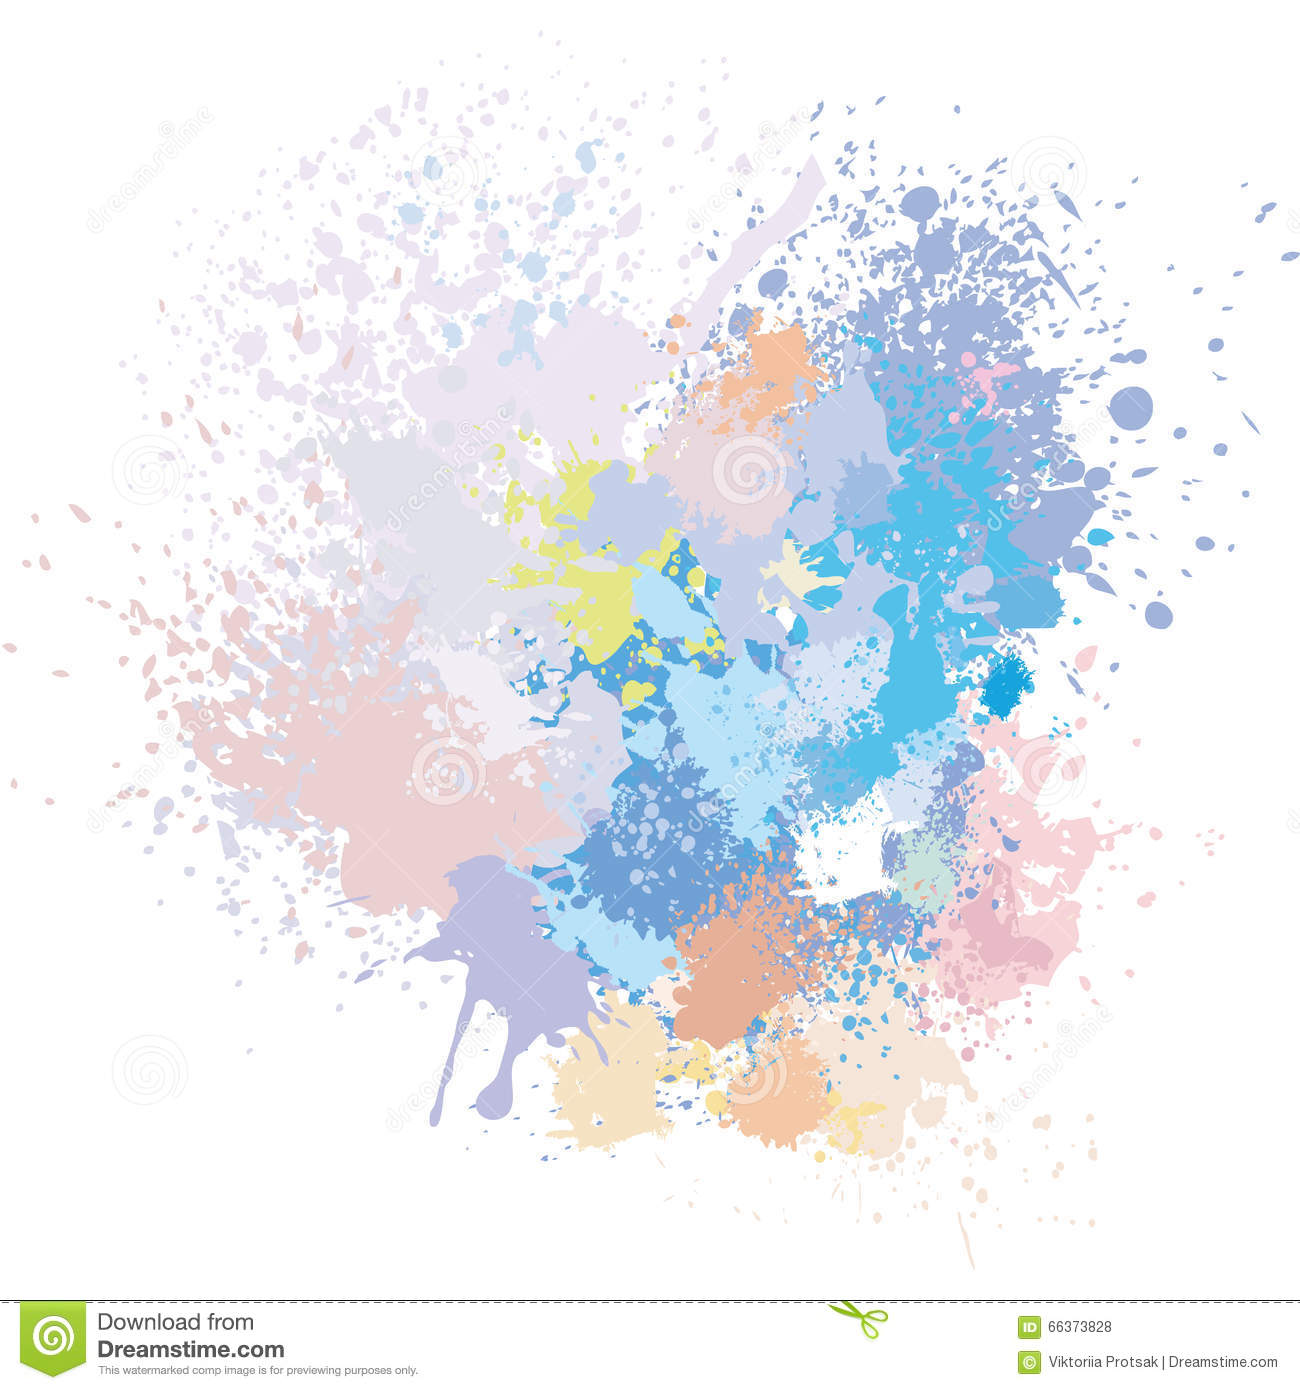 Pastel Background Of Paint Splashes Stock Vector - Illustration: 66373828